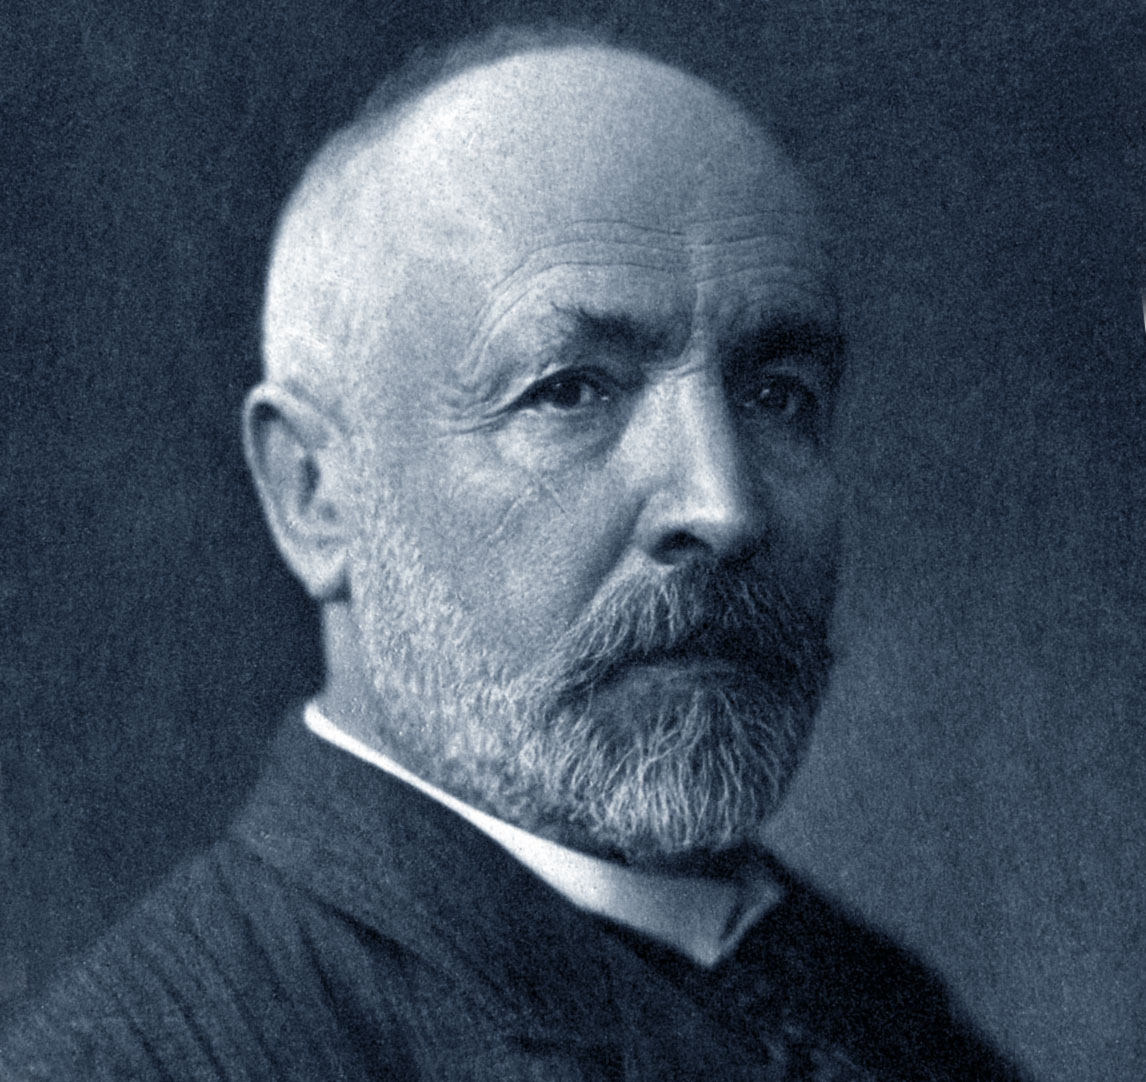 georg cantor Find great deals on ebay for georg cantor shop with confidence.